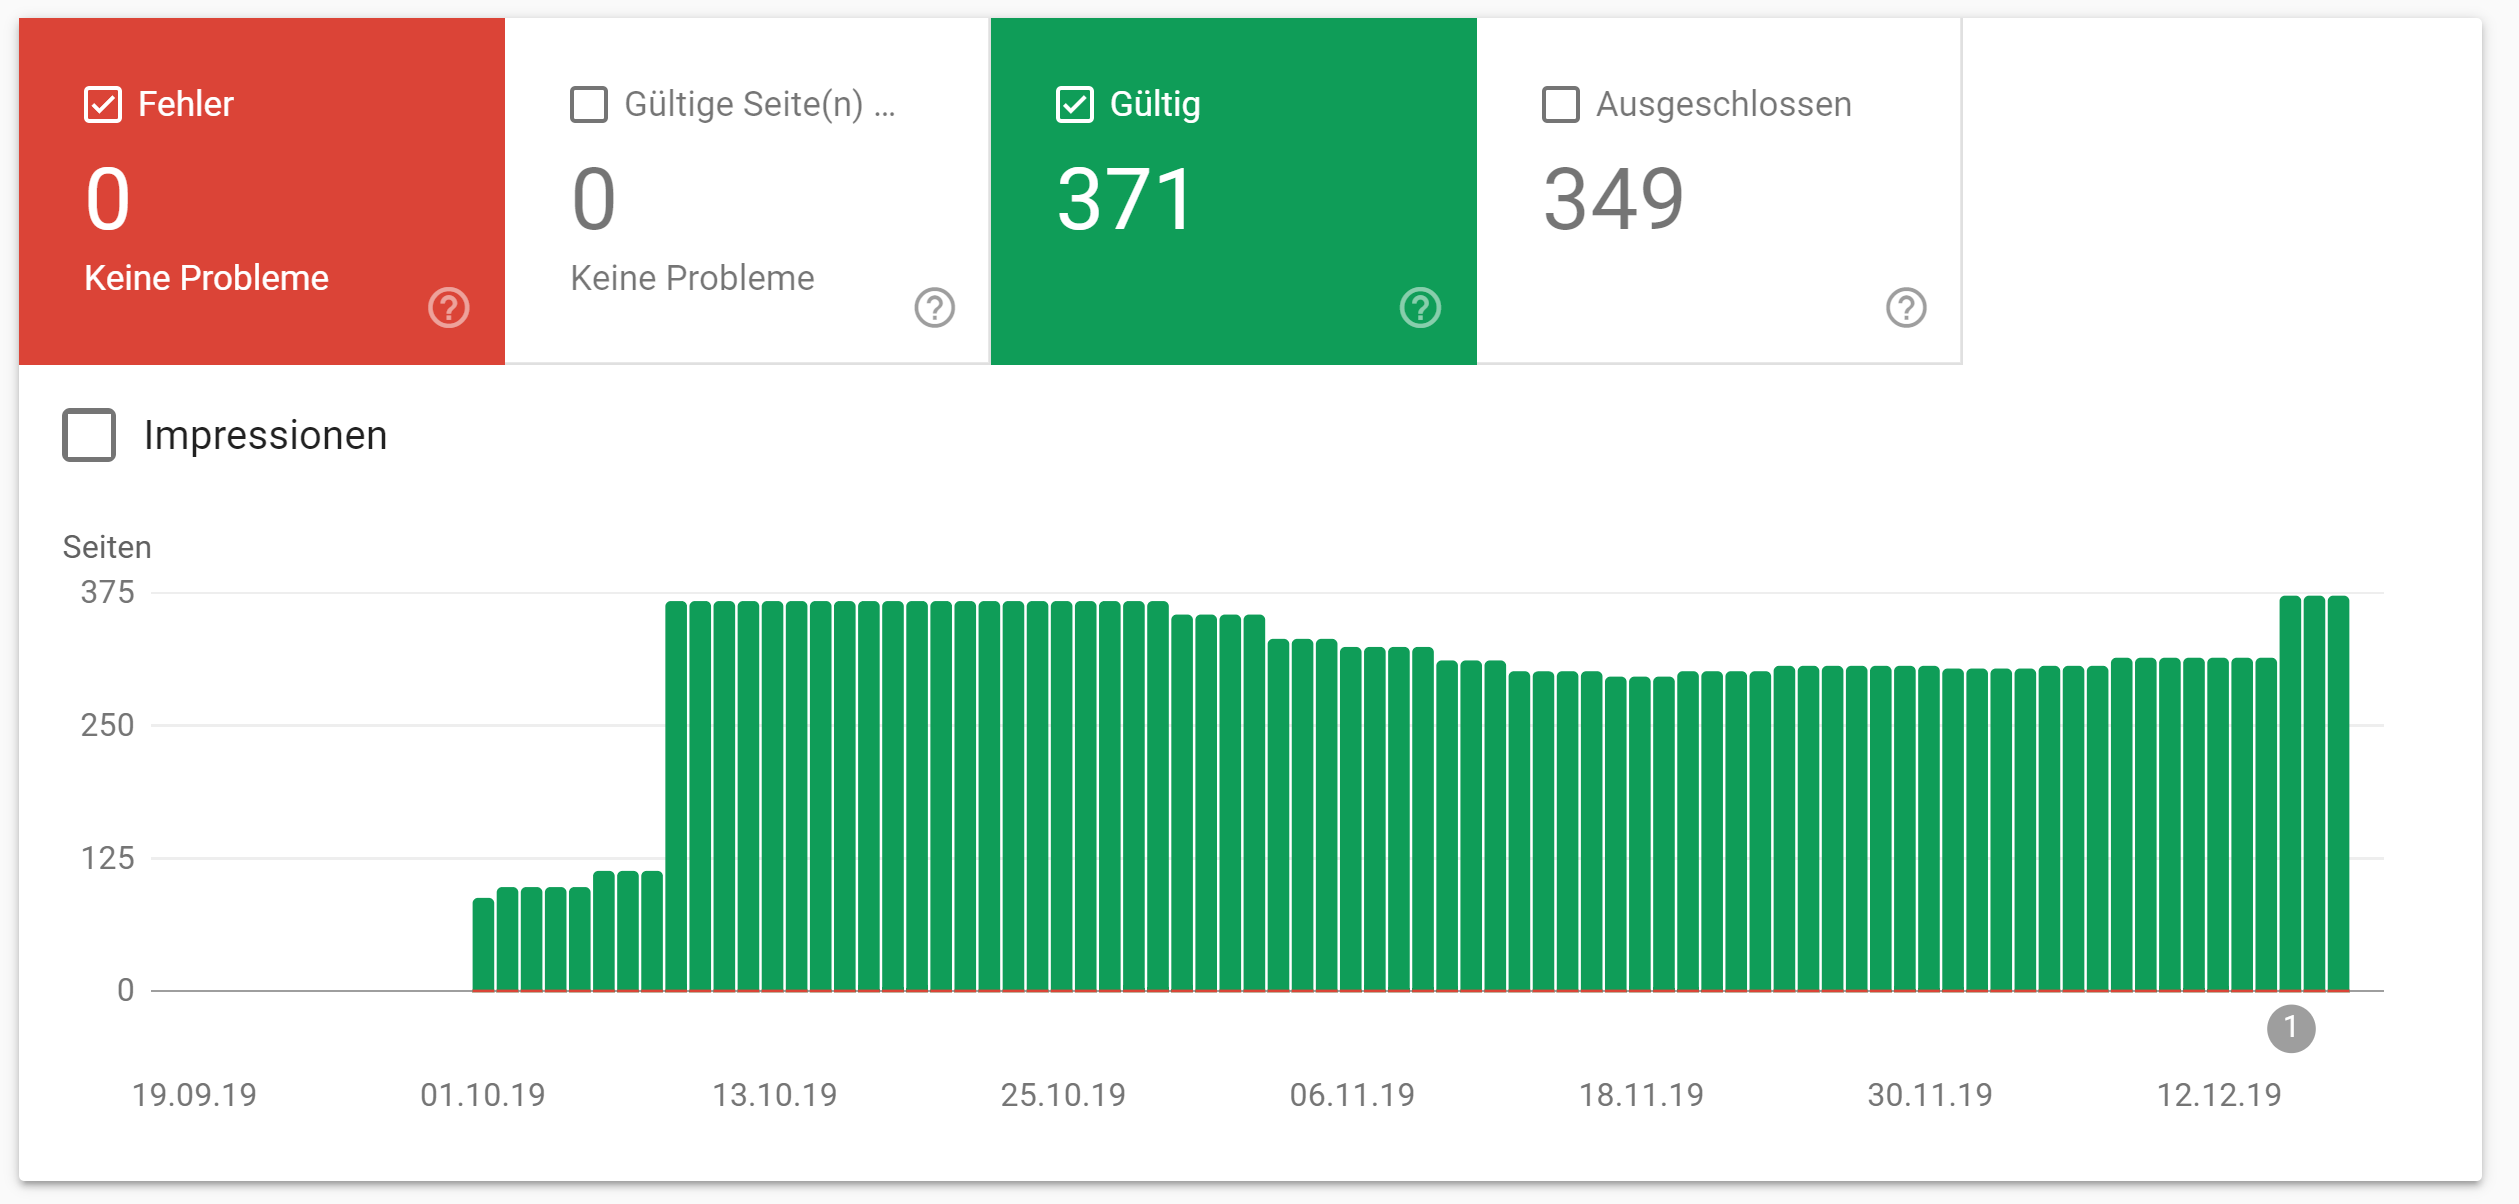 Google Search Console: the number of valid URLs increased sharply on December 15